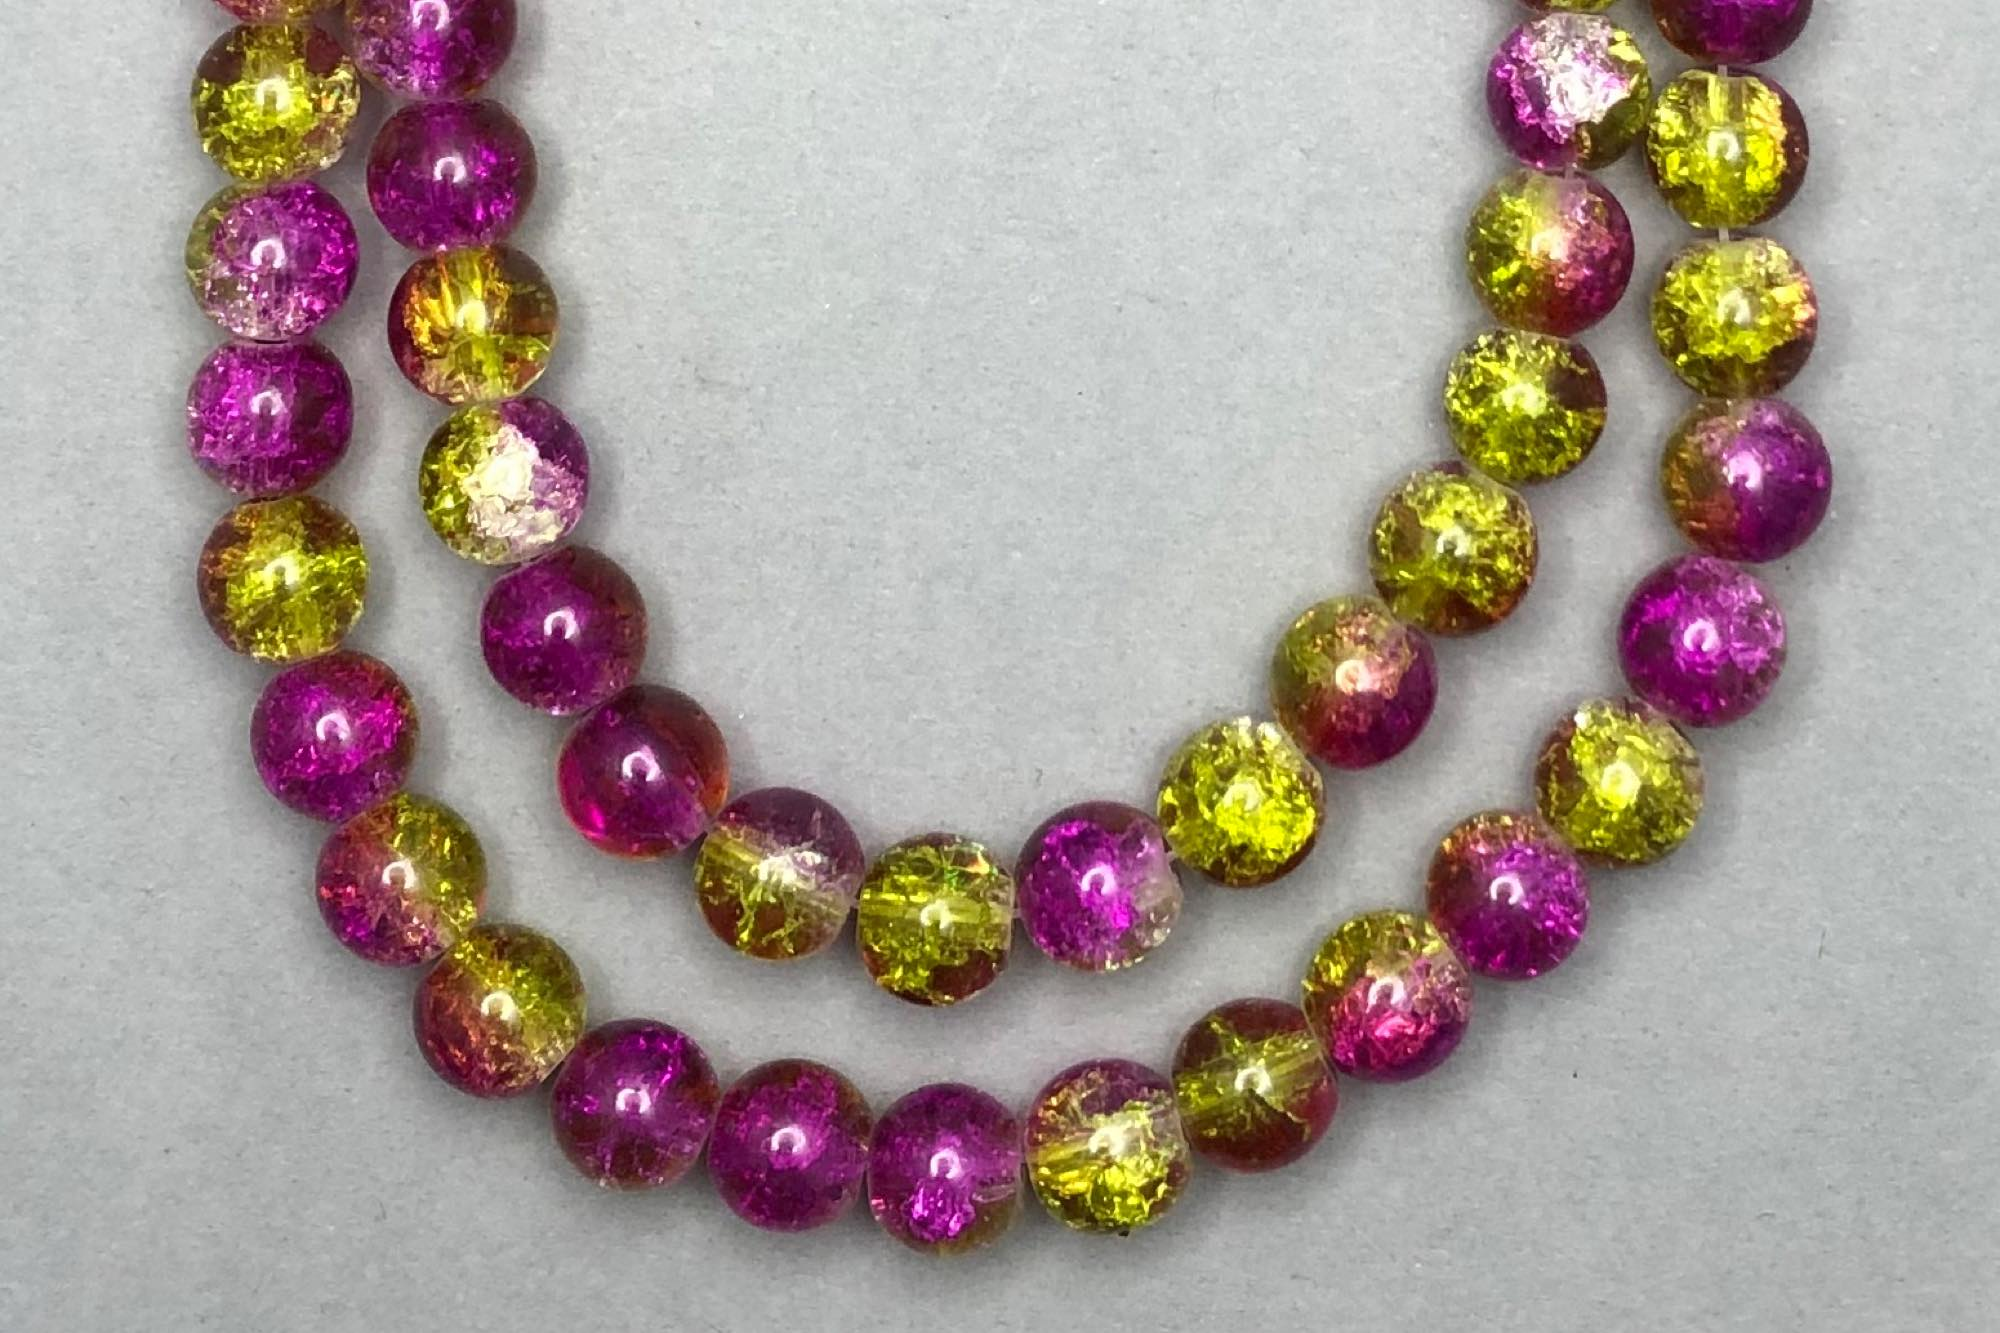 Lime/Magenta Crackle Glass Beads